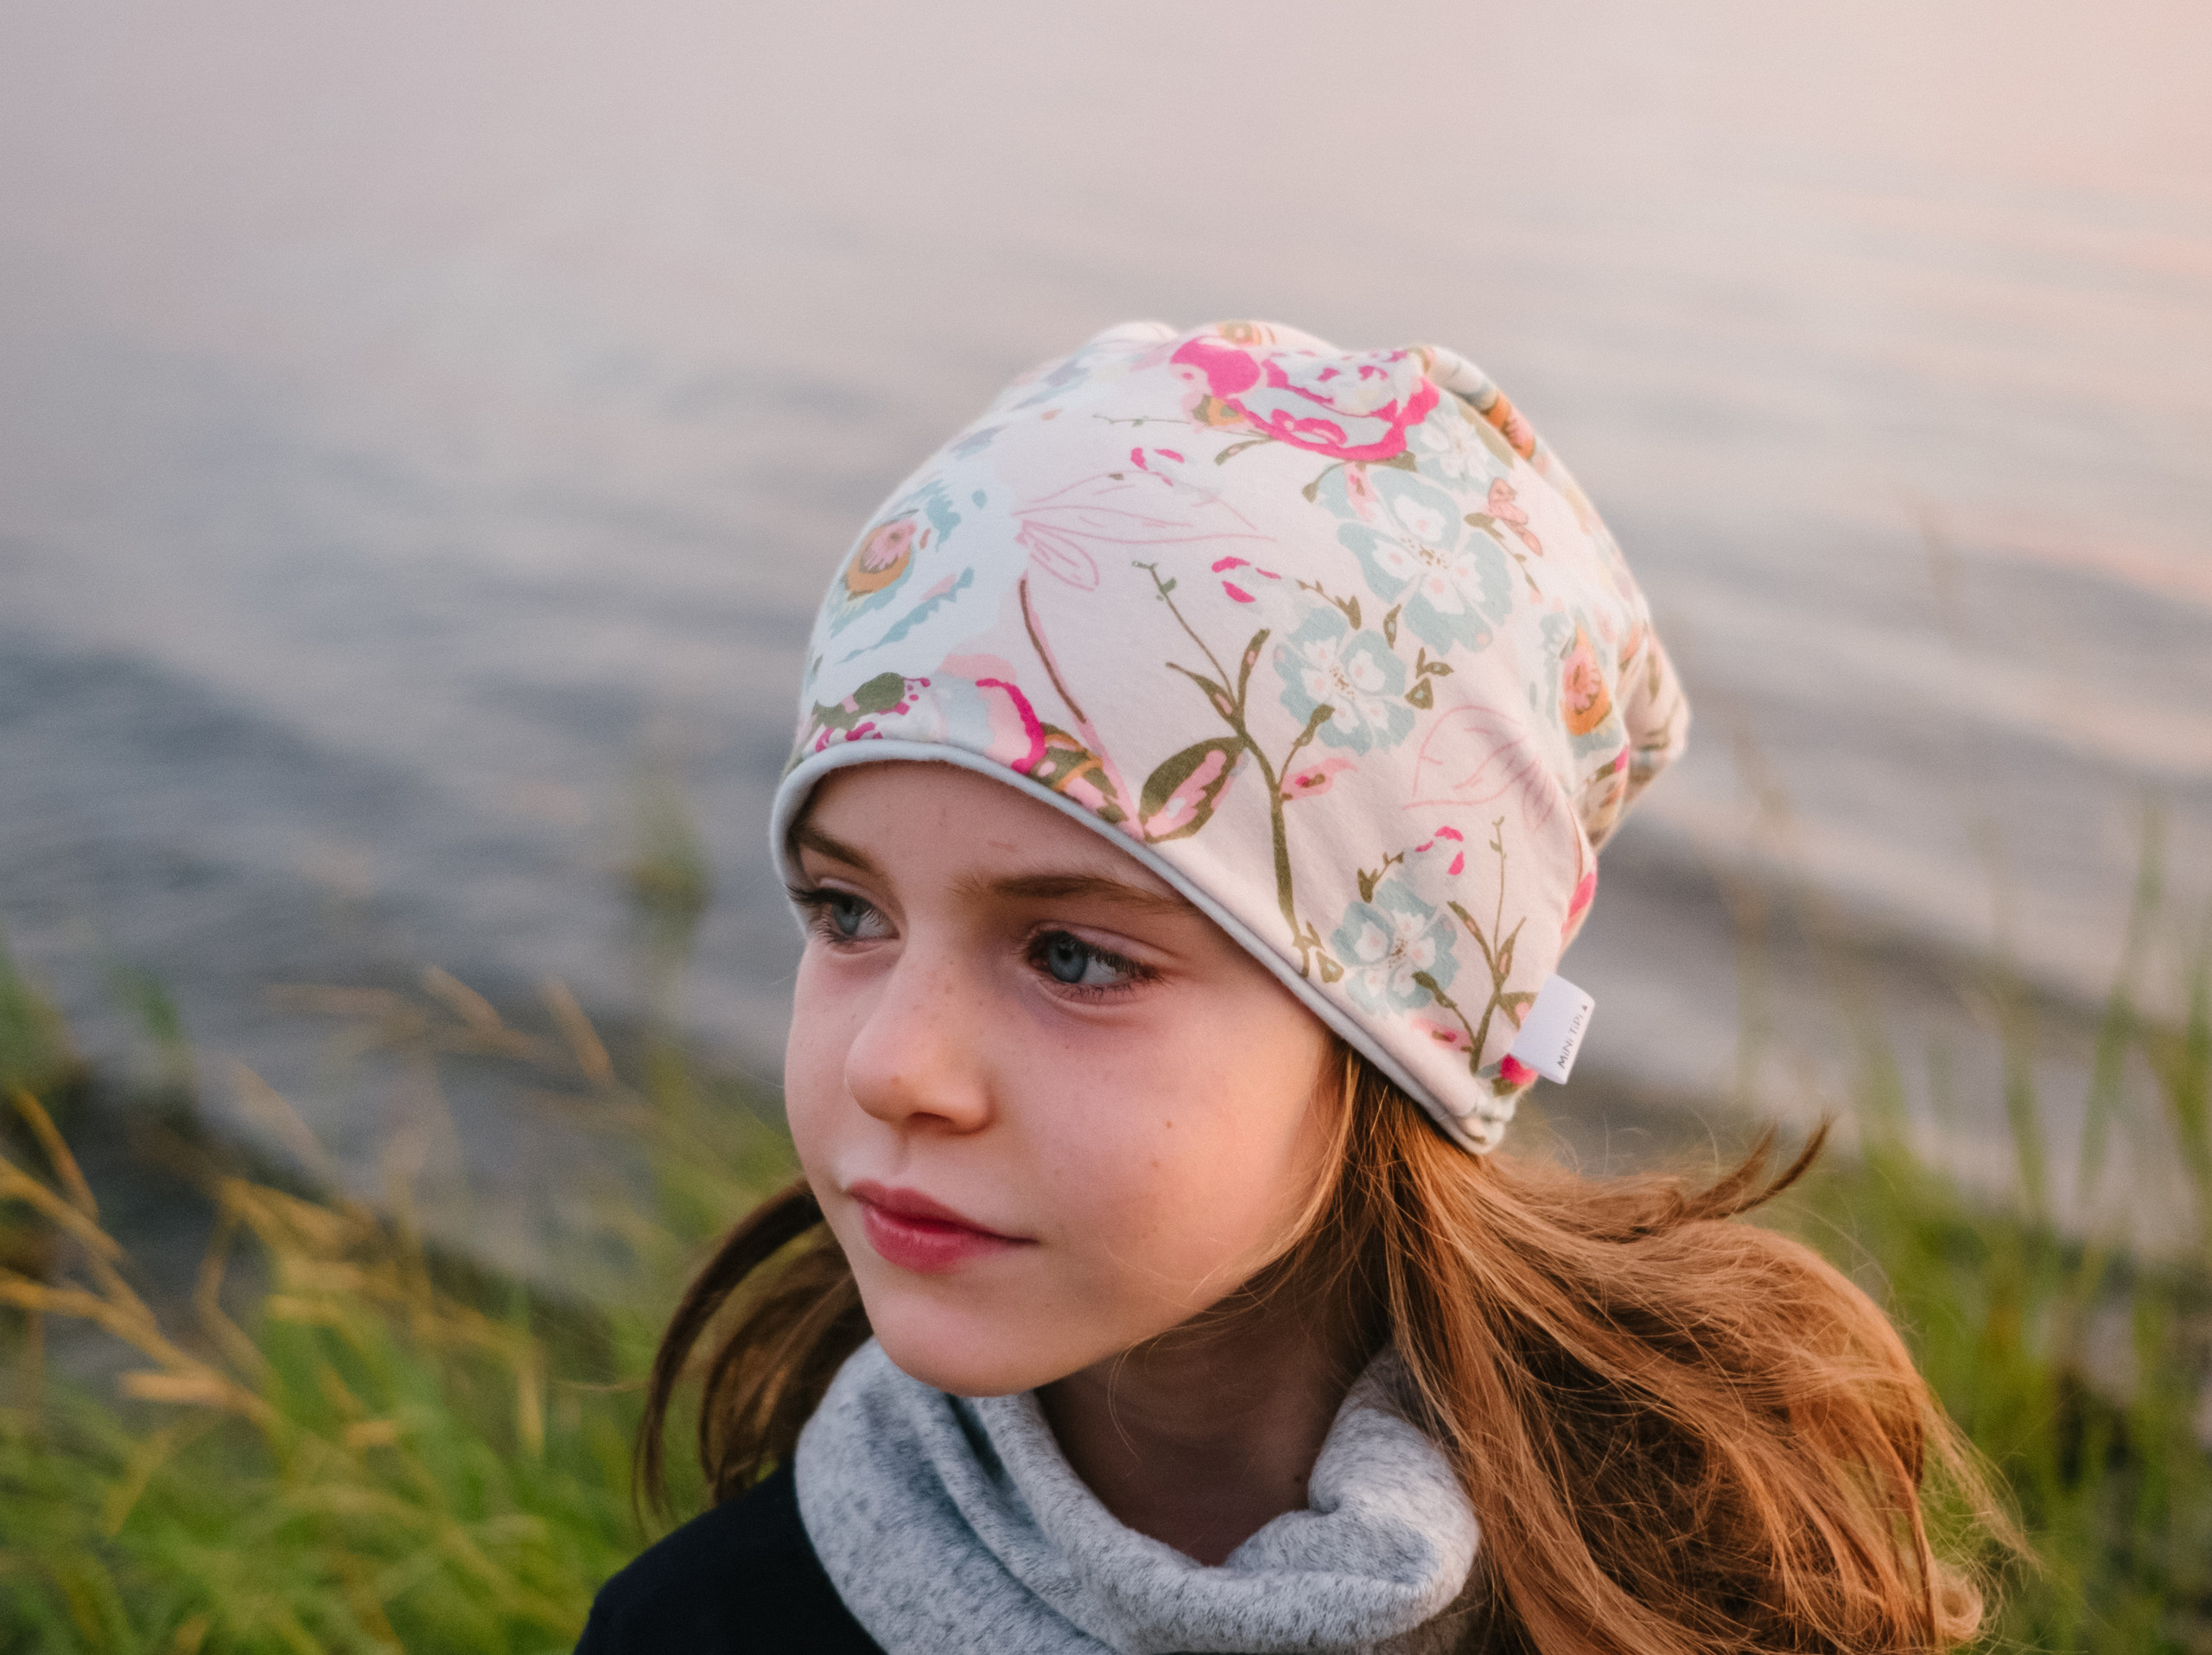 Branding and lifestyle photographer Melanie Mathieu captures portrait of a girl wearing a Mini Tipi beanie during branding photography session. Photo session in Aylmer QC at the beach at sunset.